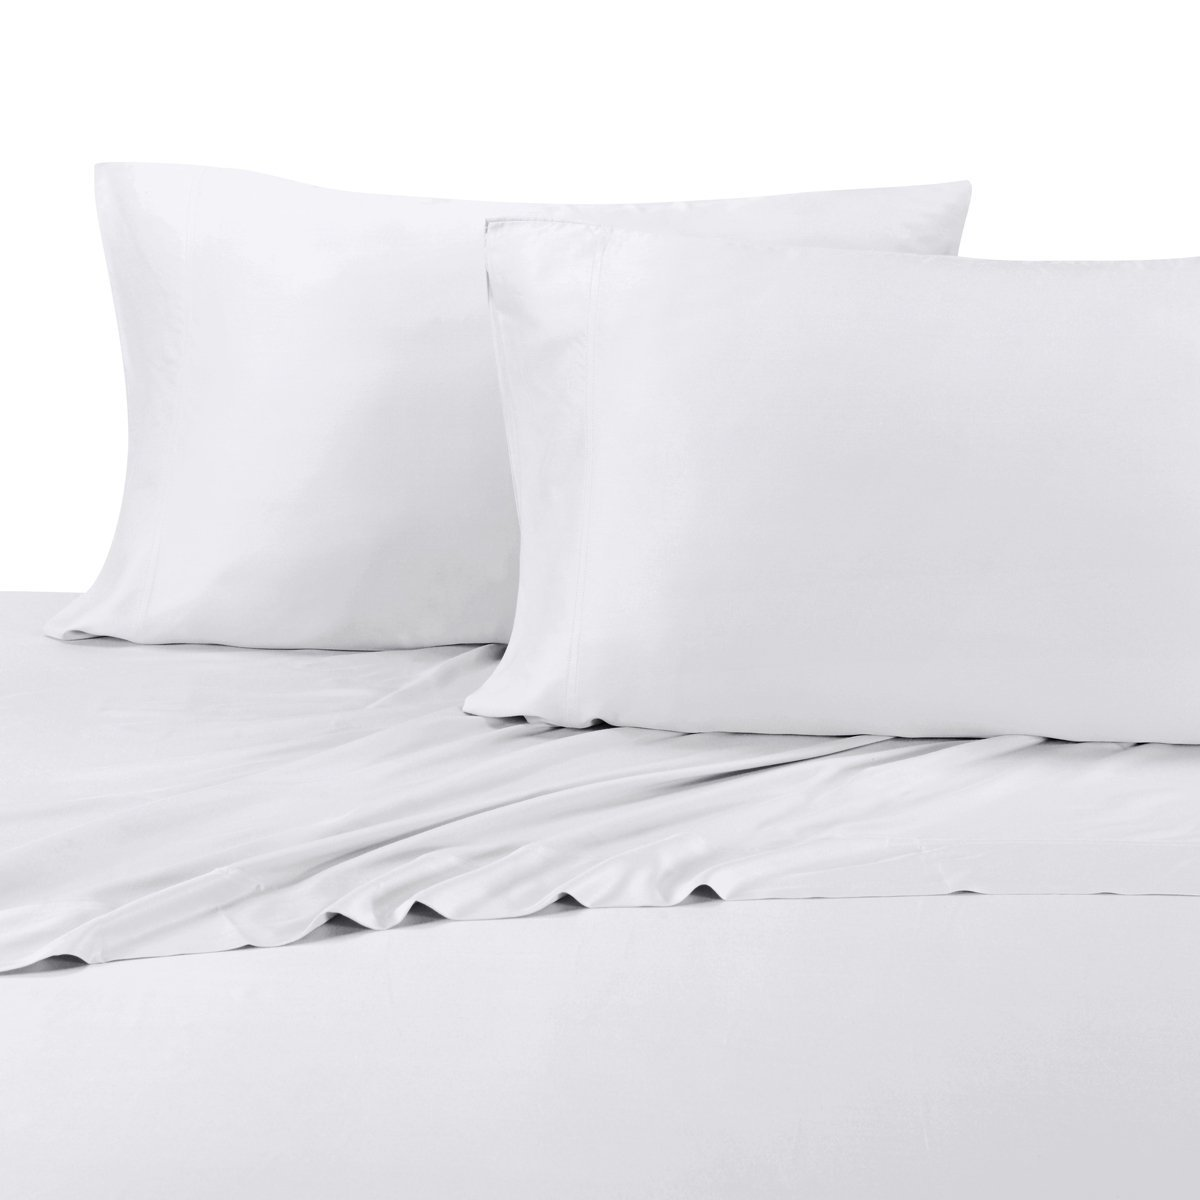 Britannica home fashions tencel sheets - Amazon Com Tencel Eucalyptus Abripedic Soft Cool Sheets Luxurious Breathable Made From Sustainable 100 Tencel Fiber From Eucalyptus Trees